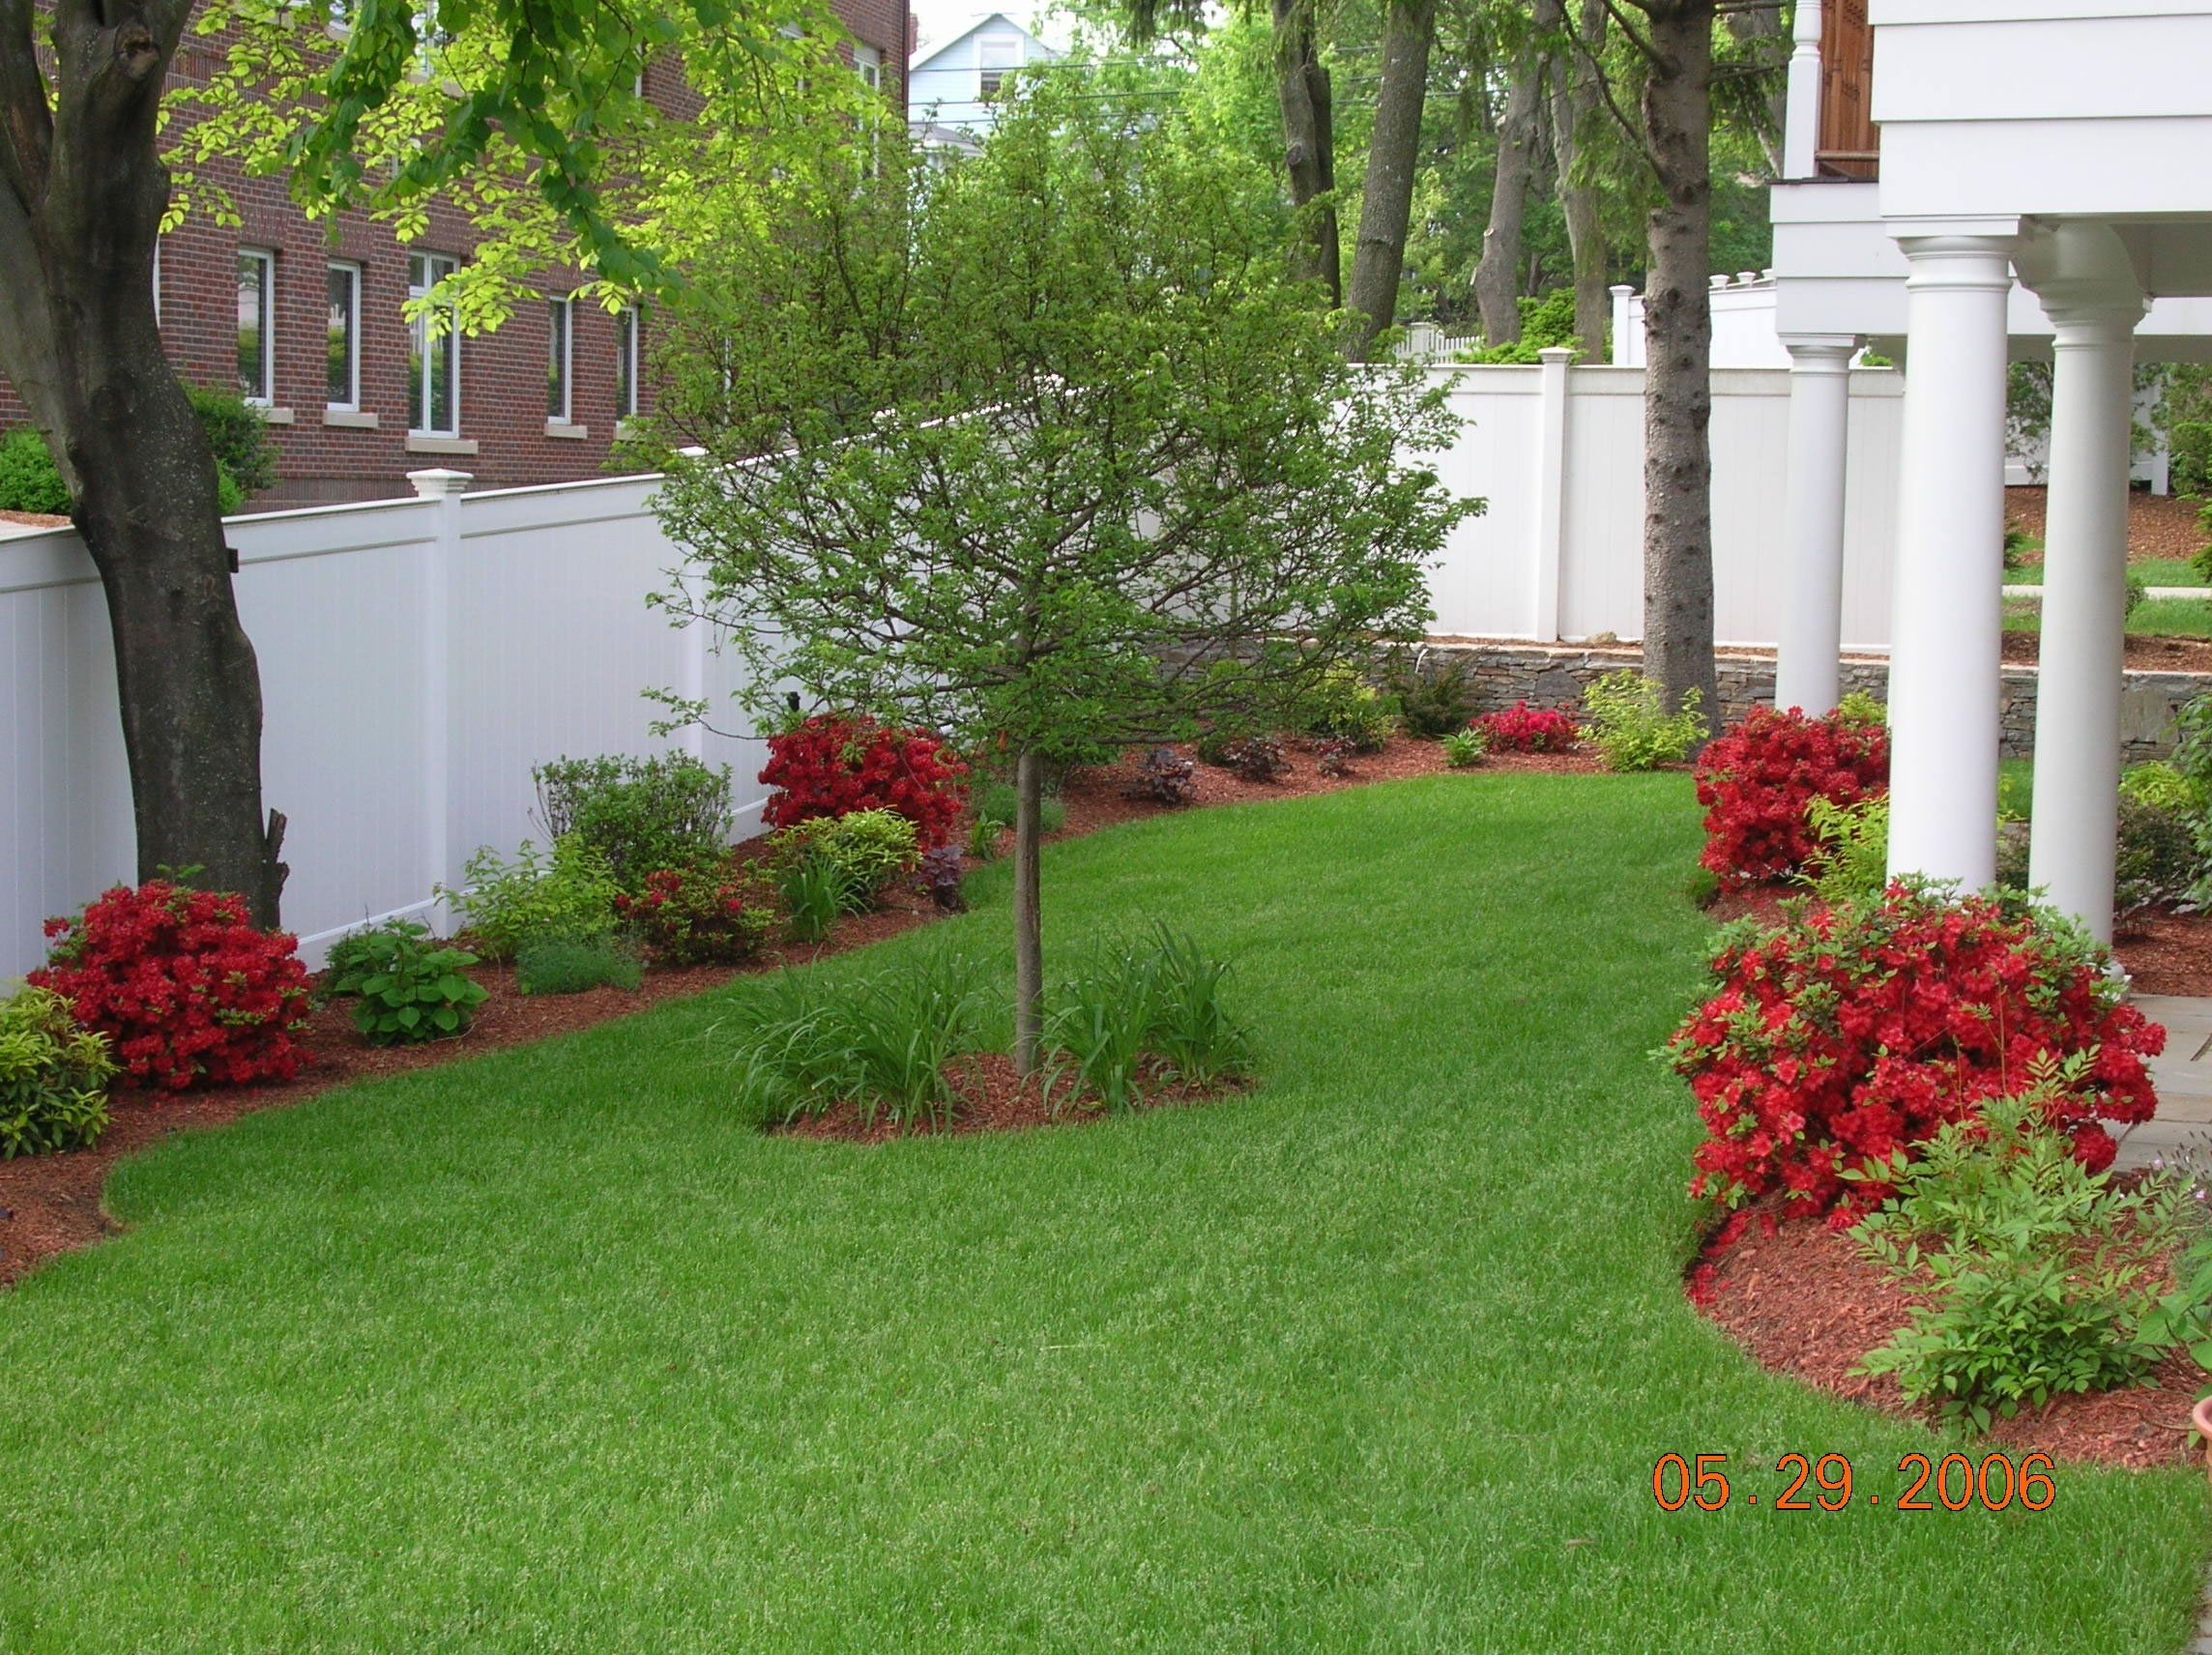 Top 10 simple diy landscaping ideas seek diy for Outdoor garden ideas